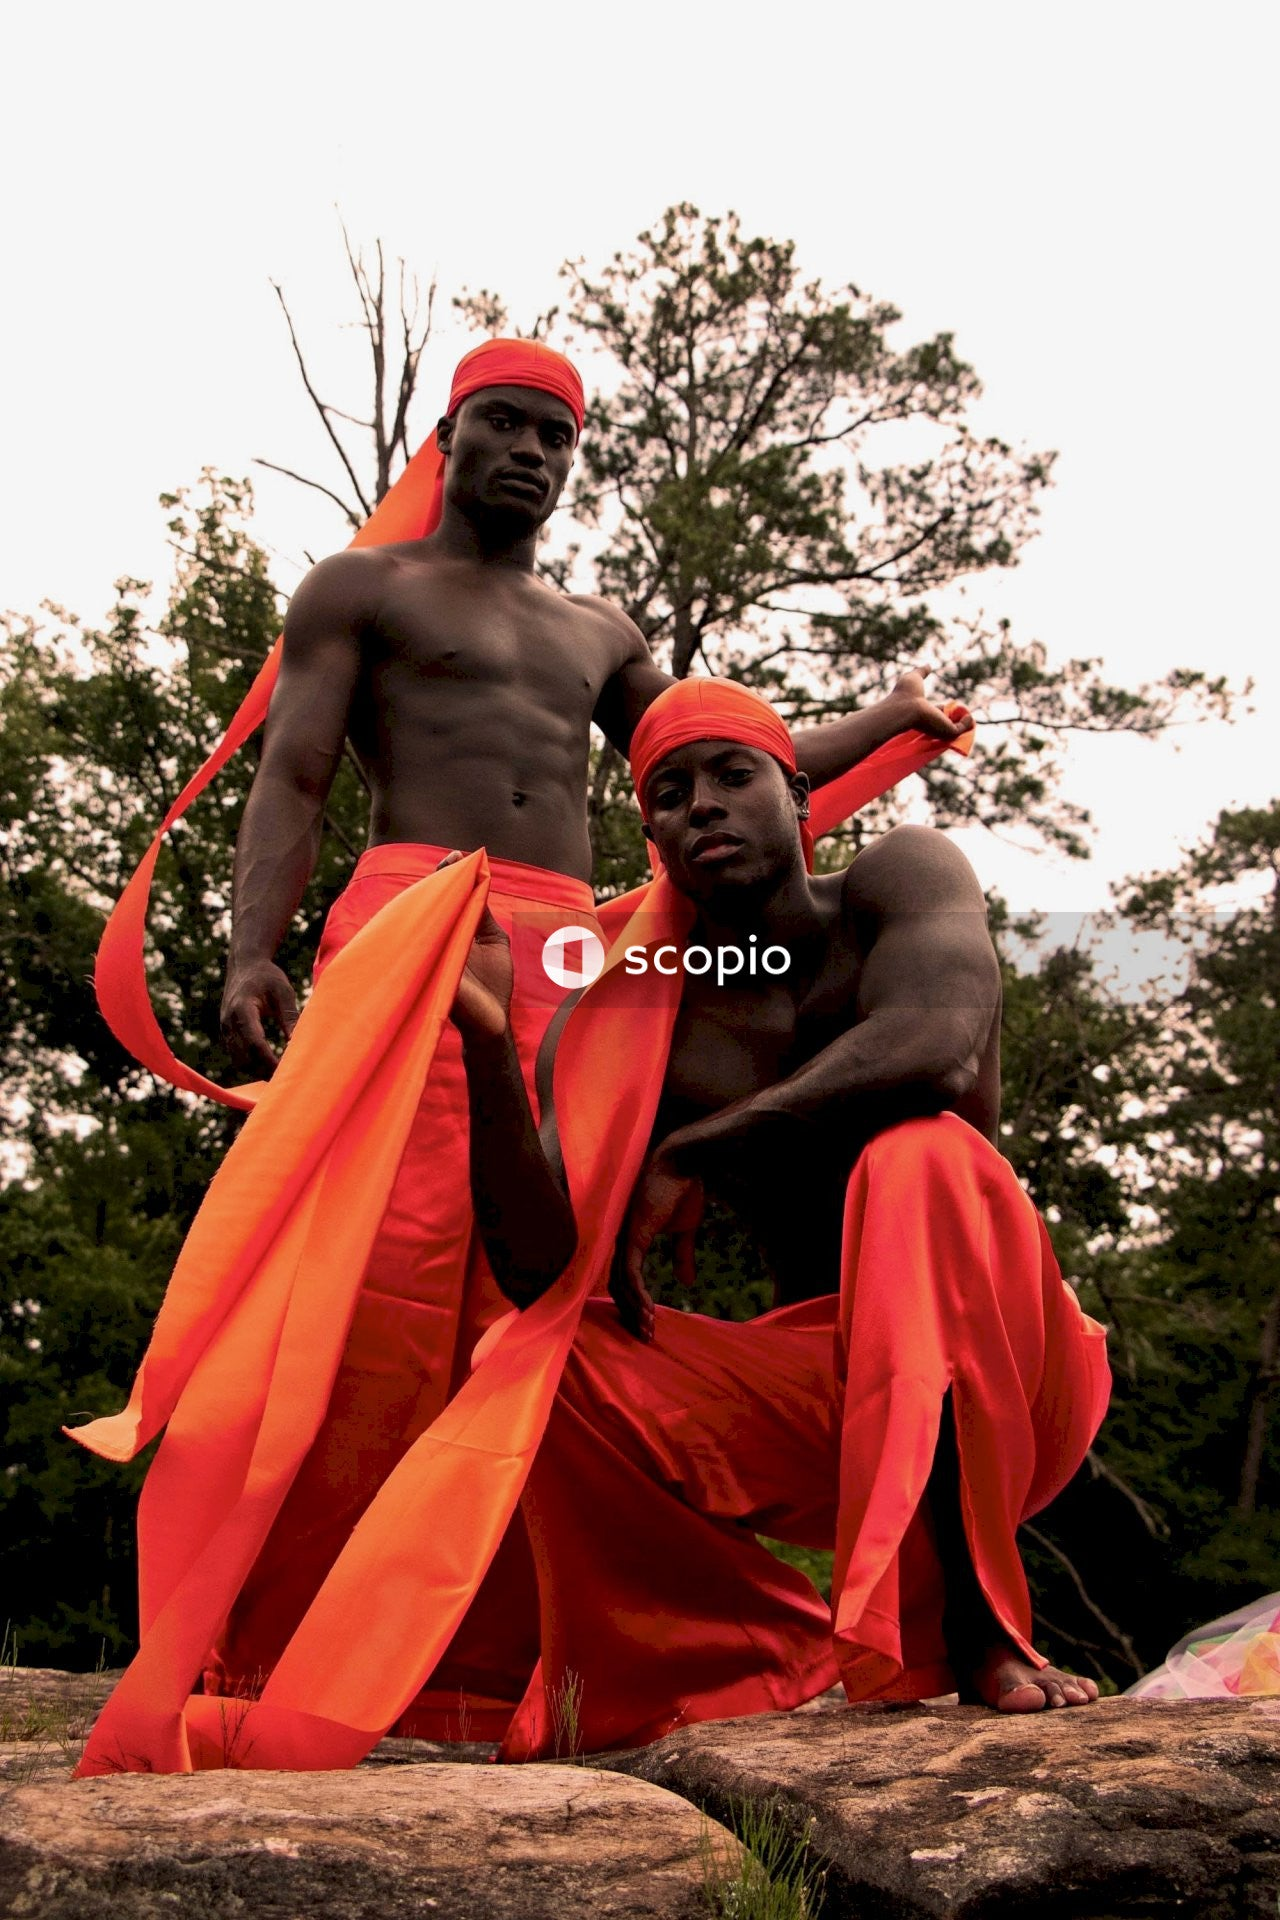 Two topless men in orange outfit standing on rock